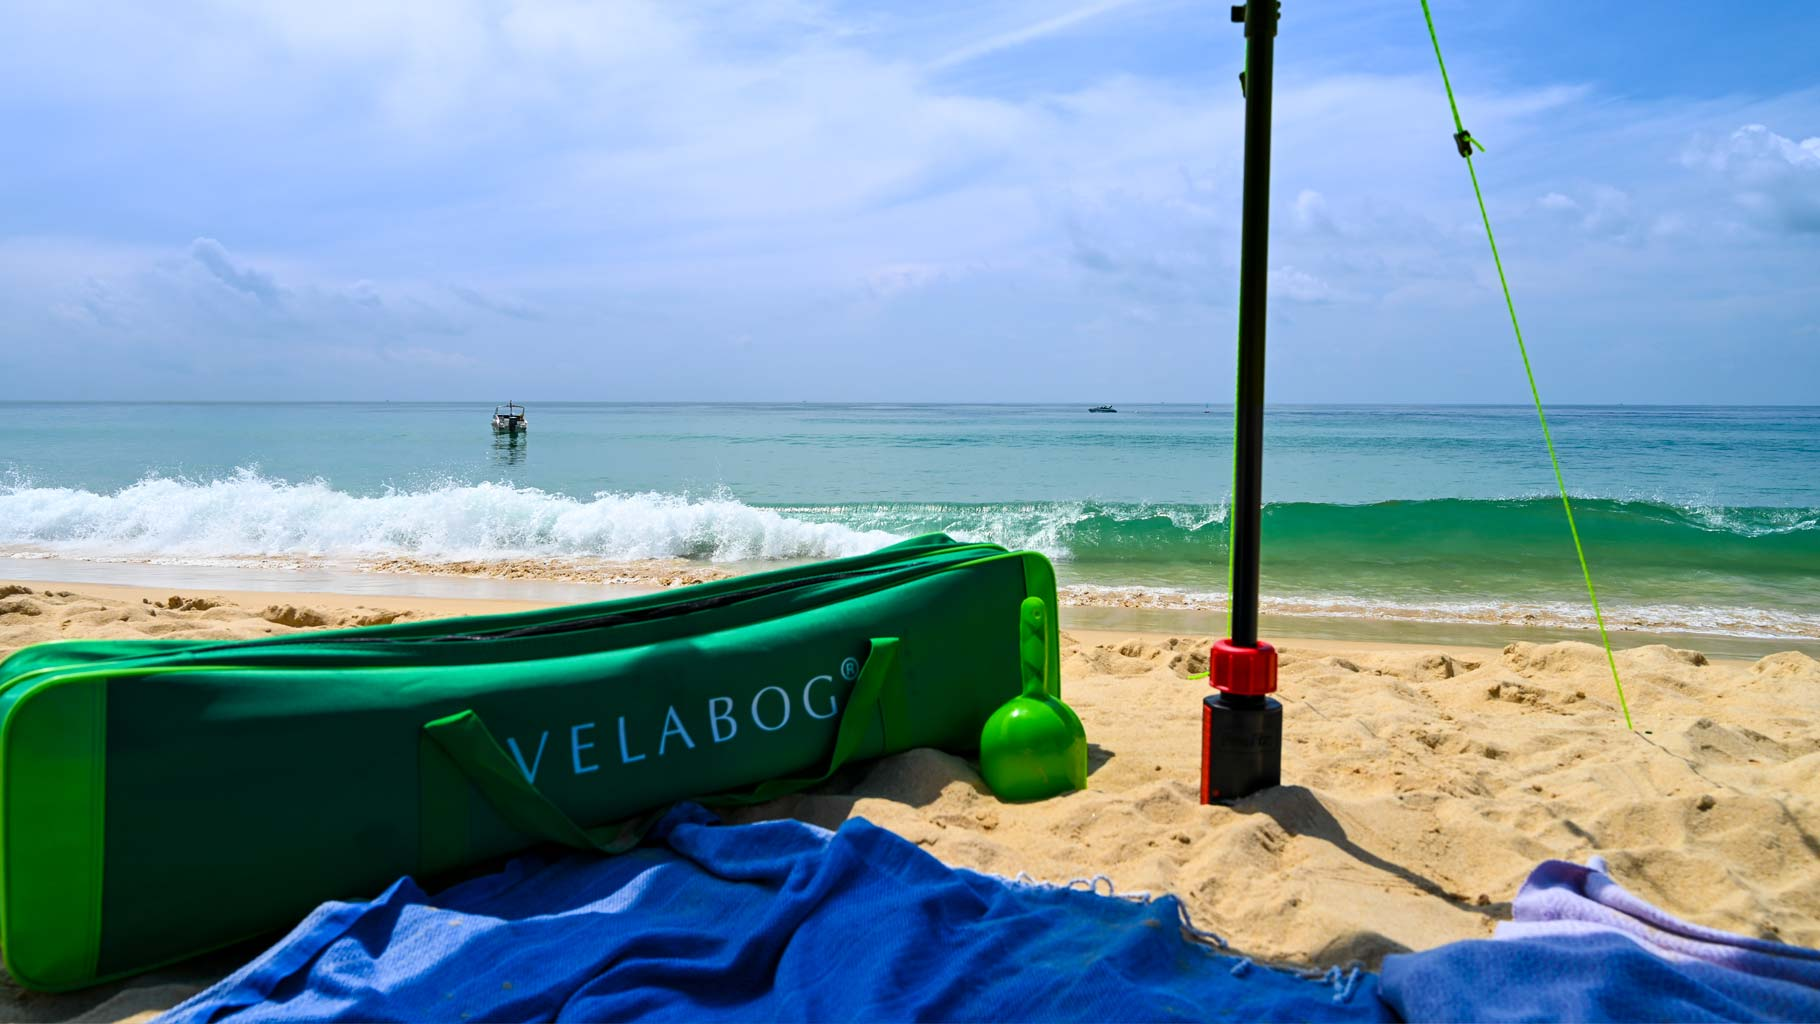 Spacious and robust green Velabog beach bag for the transport of sun sail «Breeze» and much more, e.g. Beach towels etc.